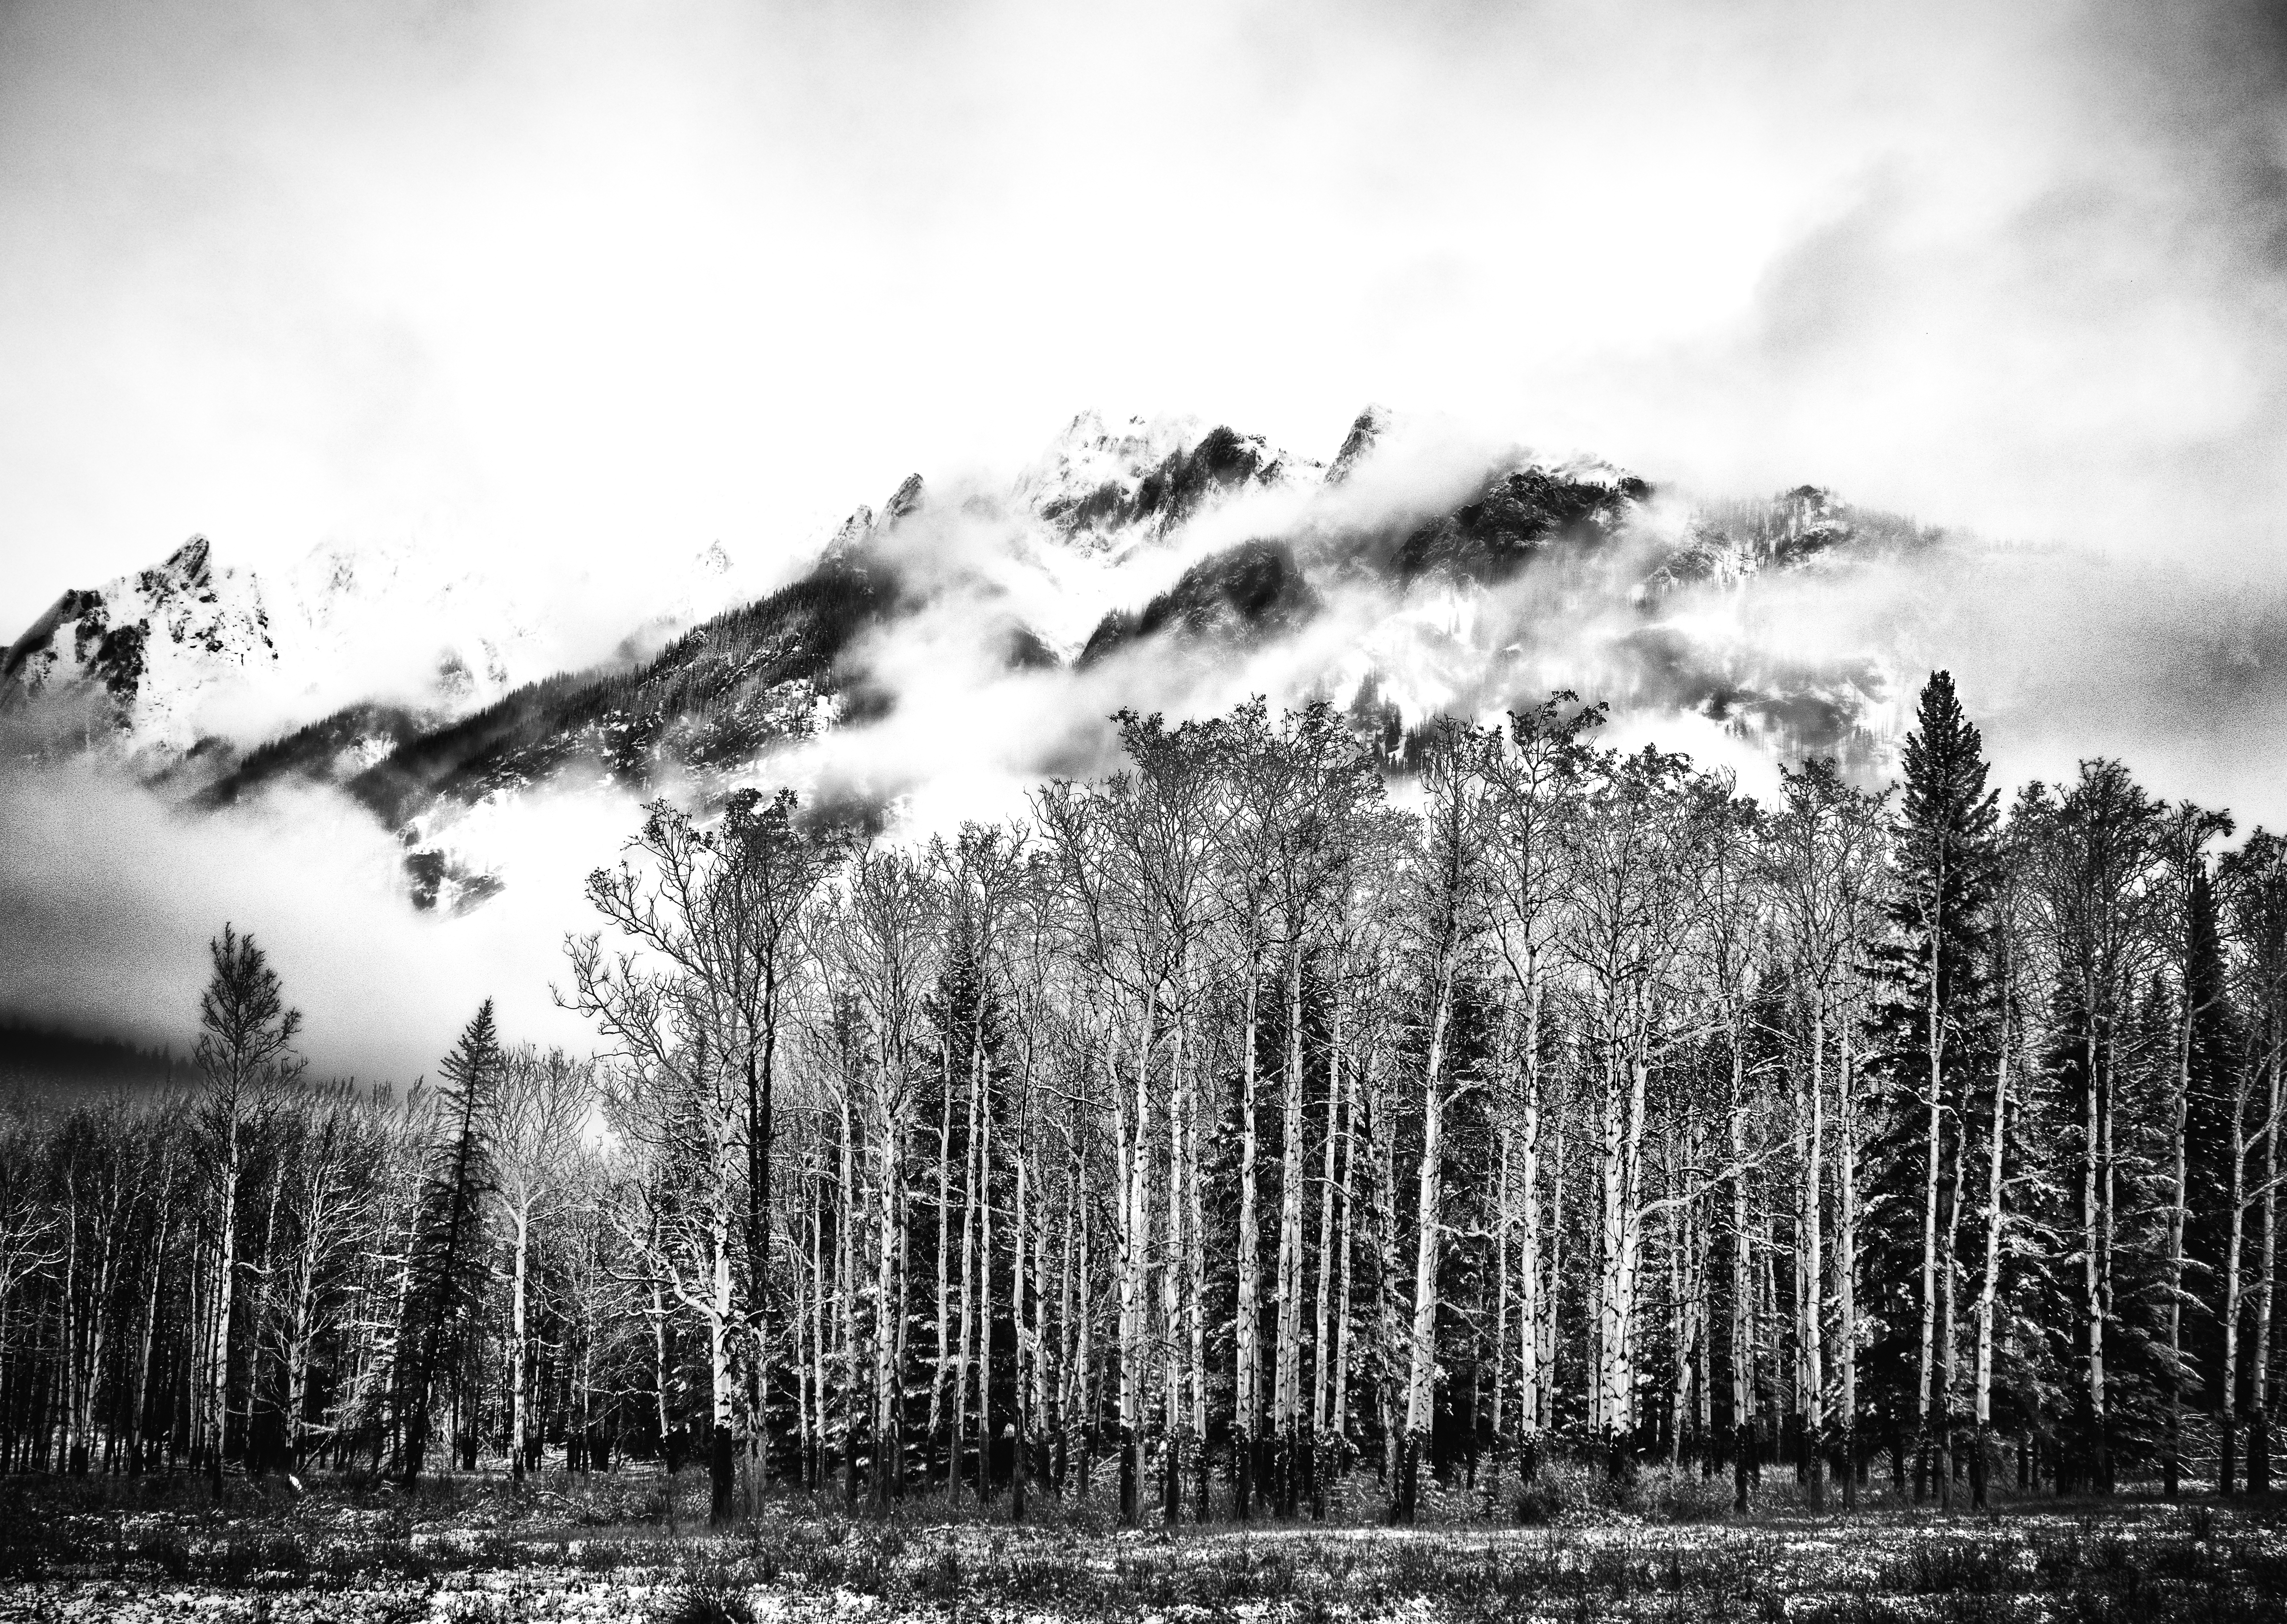 Black and white image with birch trees and mountains